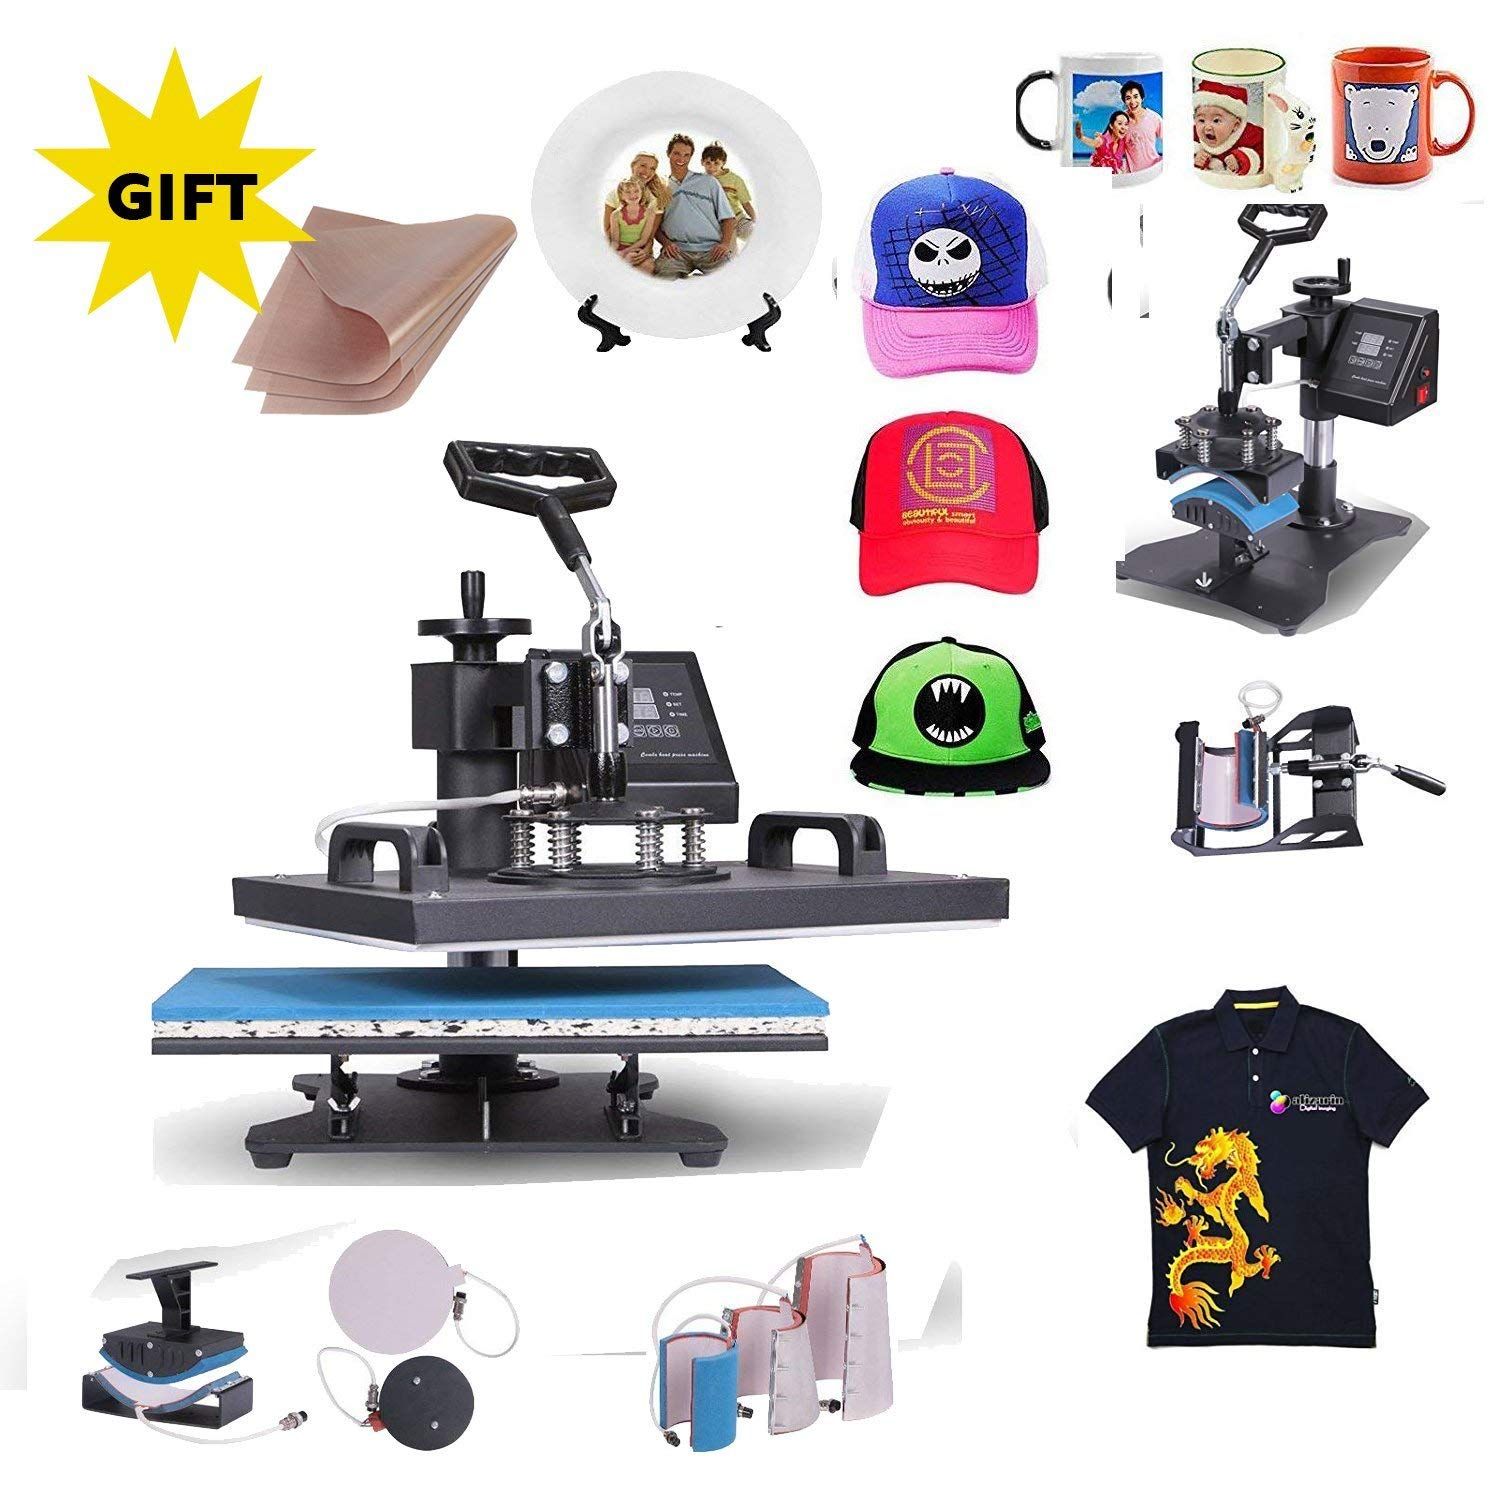 Mophorn Heat Press 12X15Inch 8in1 Swing-Away Heat Press Machine Digital Transfer Sublimation T-Shirt Press Machin for Mug/Hat/Plate/Cap (12x15 8in1 Dual Digital)